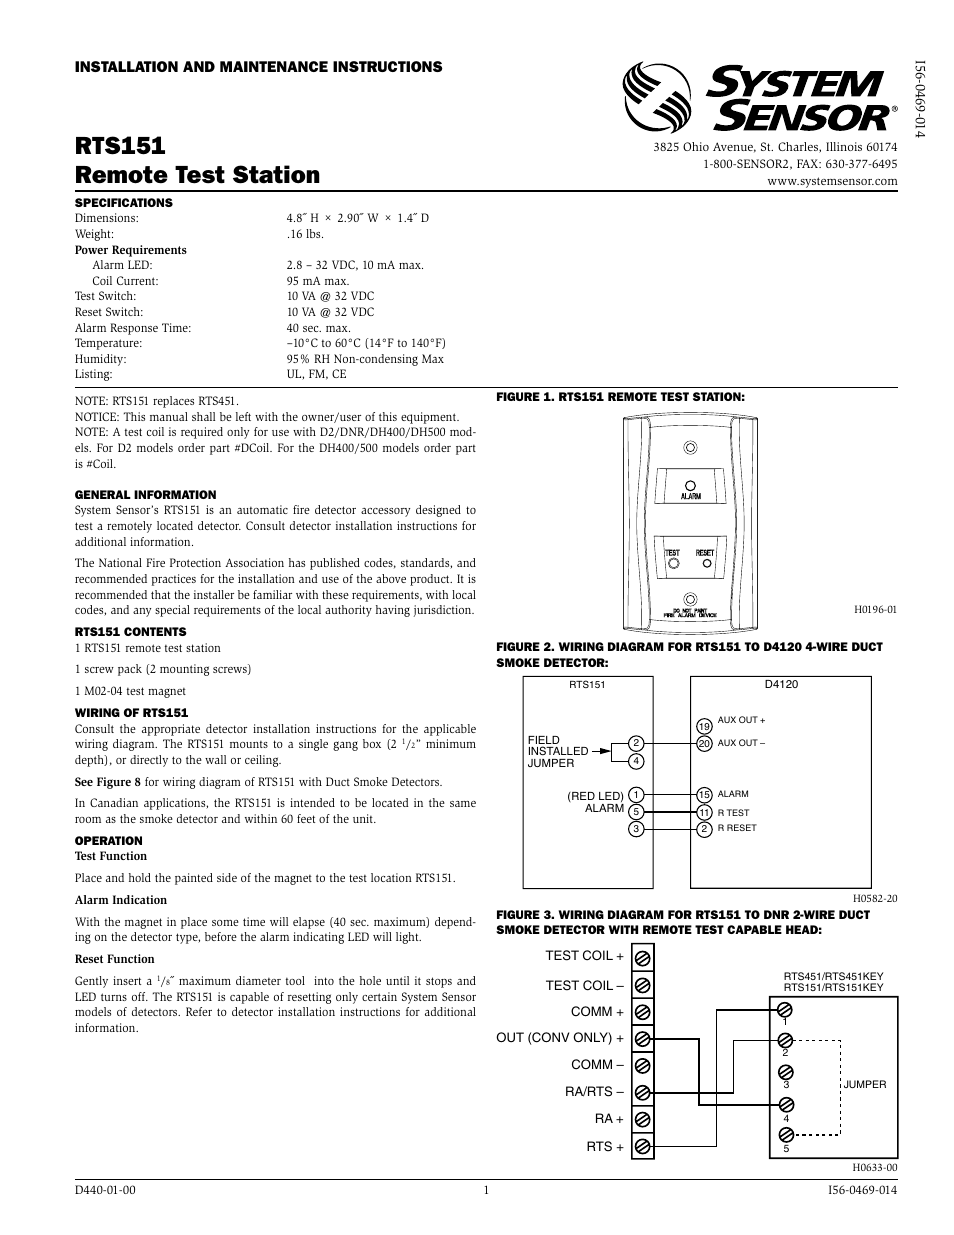 System Sensor Rts151 User Manual 2 Pages Car Alarm Wiring Colour Codes